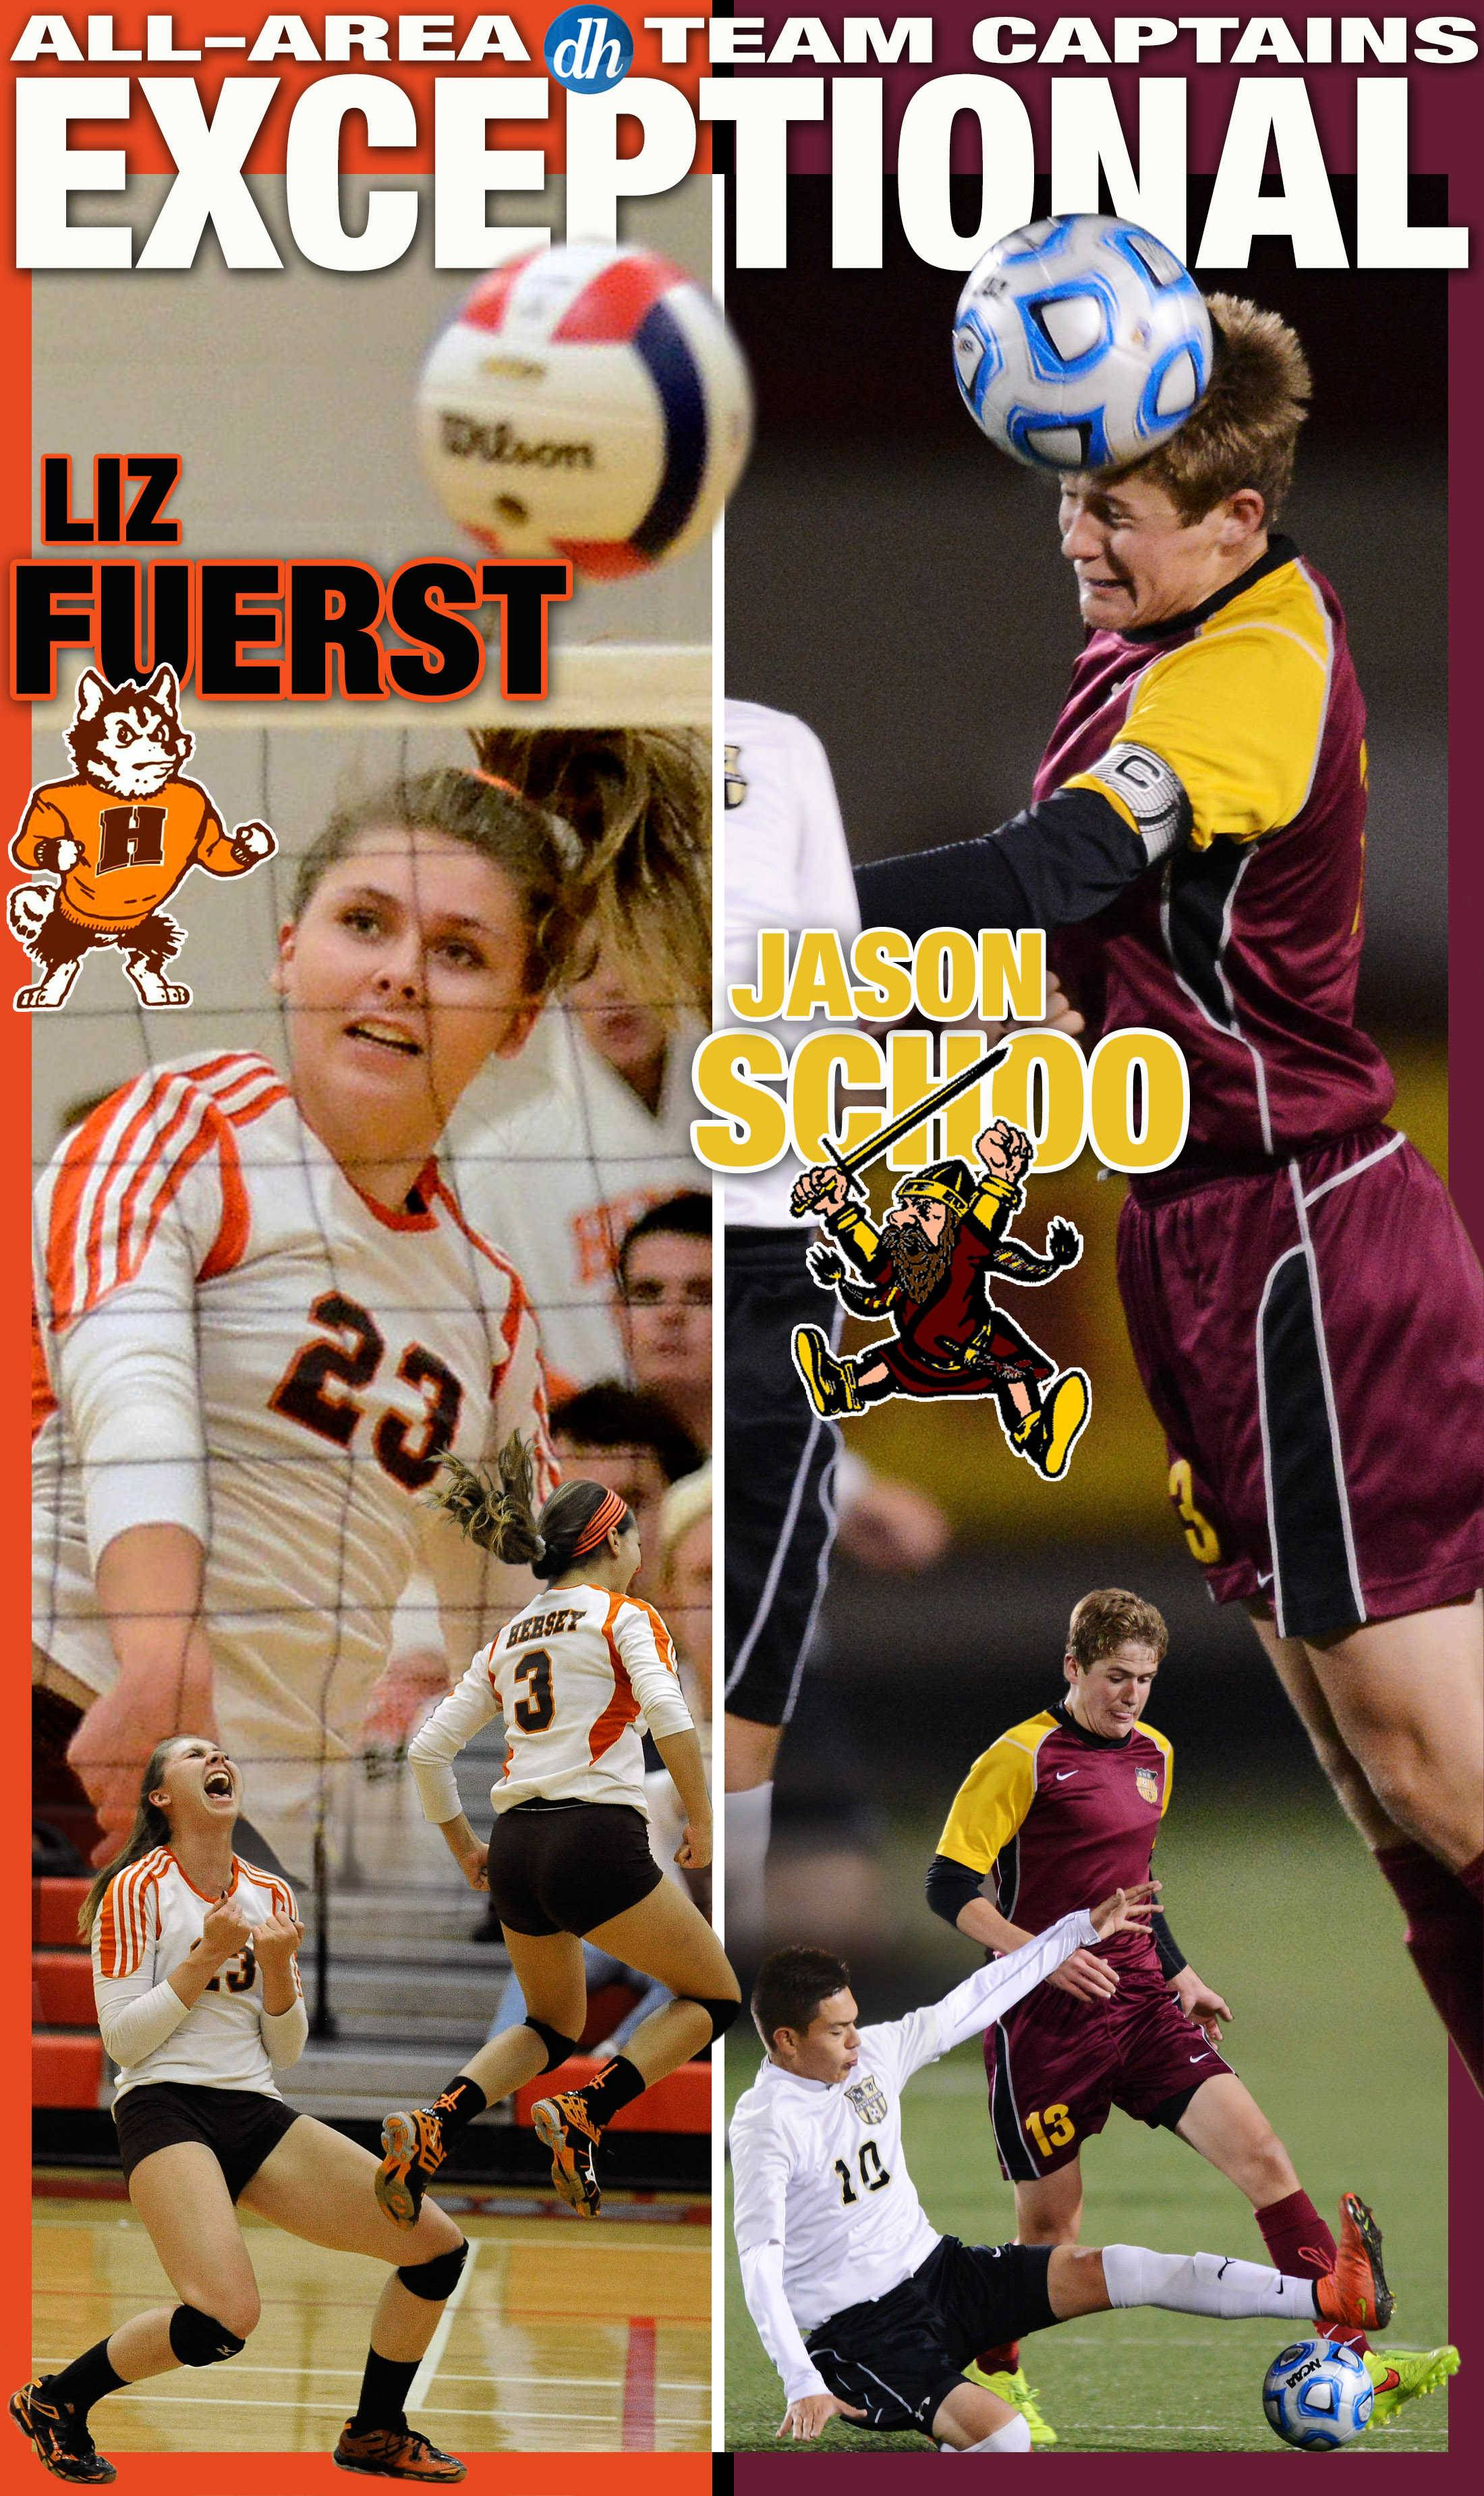 Volleyball player Liz Fuerst of Hersey and soccer player Jason Schoo of Schaumburg are the Daily Herald All-Area Honorary Team Captains for 2015.